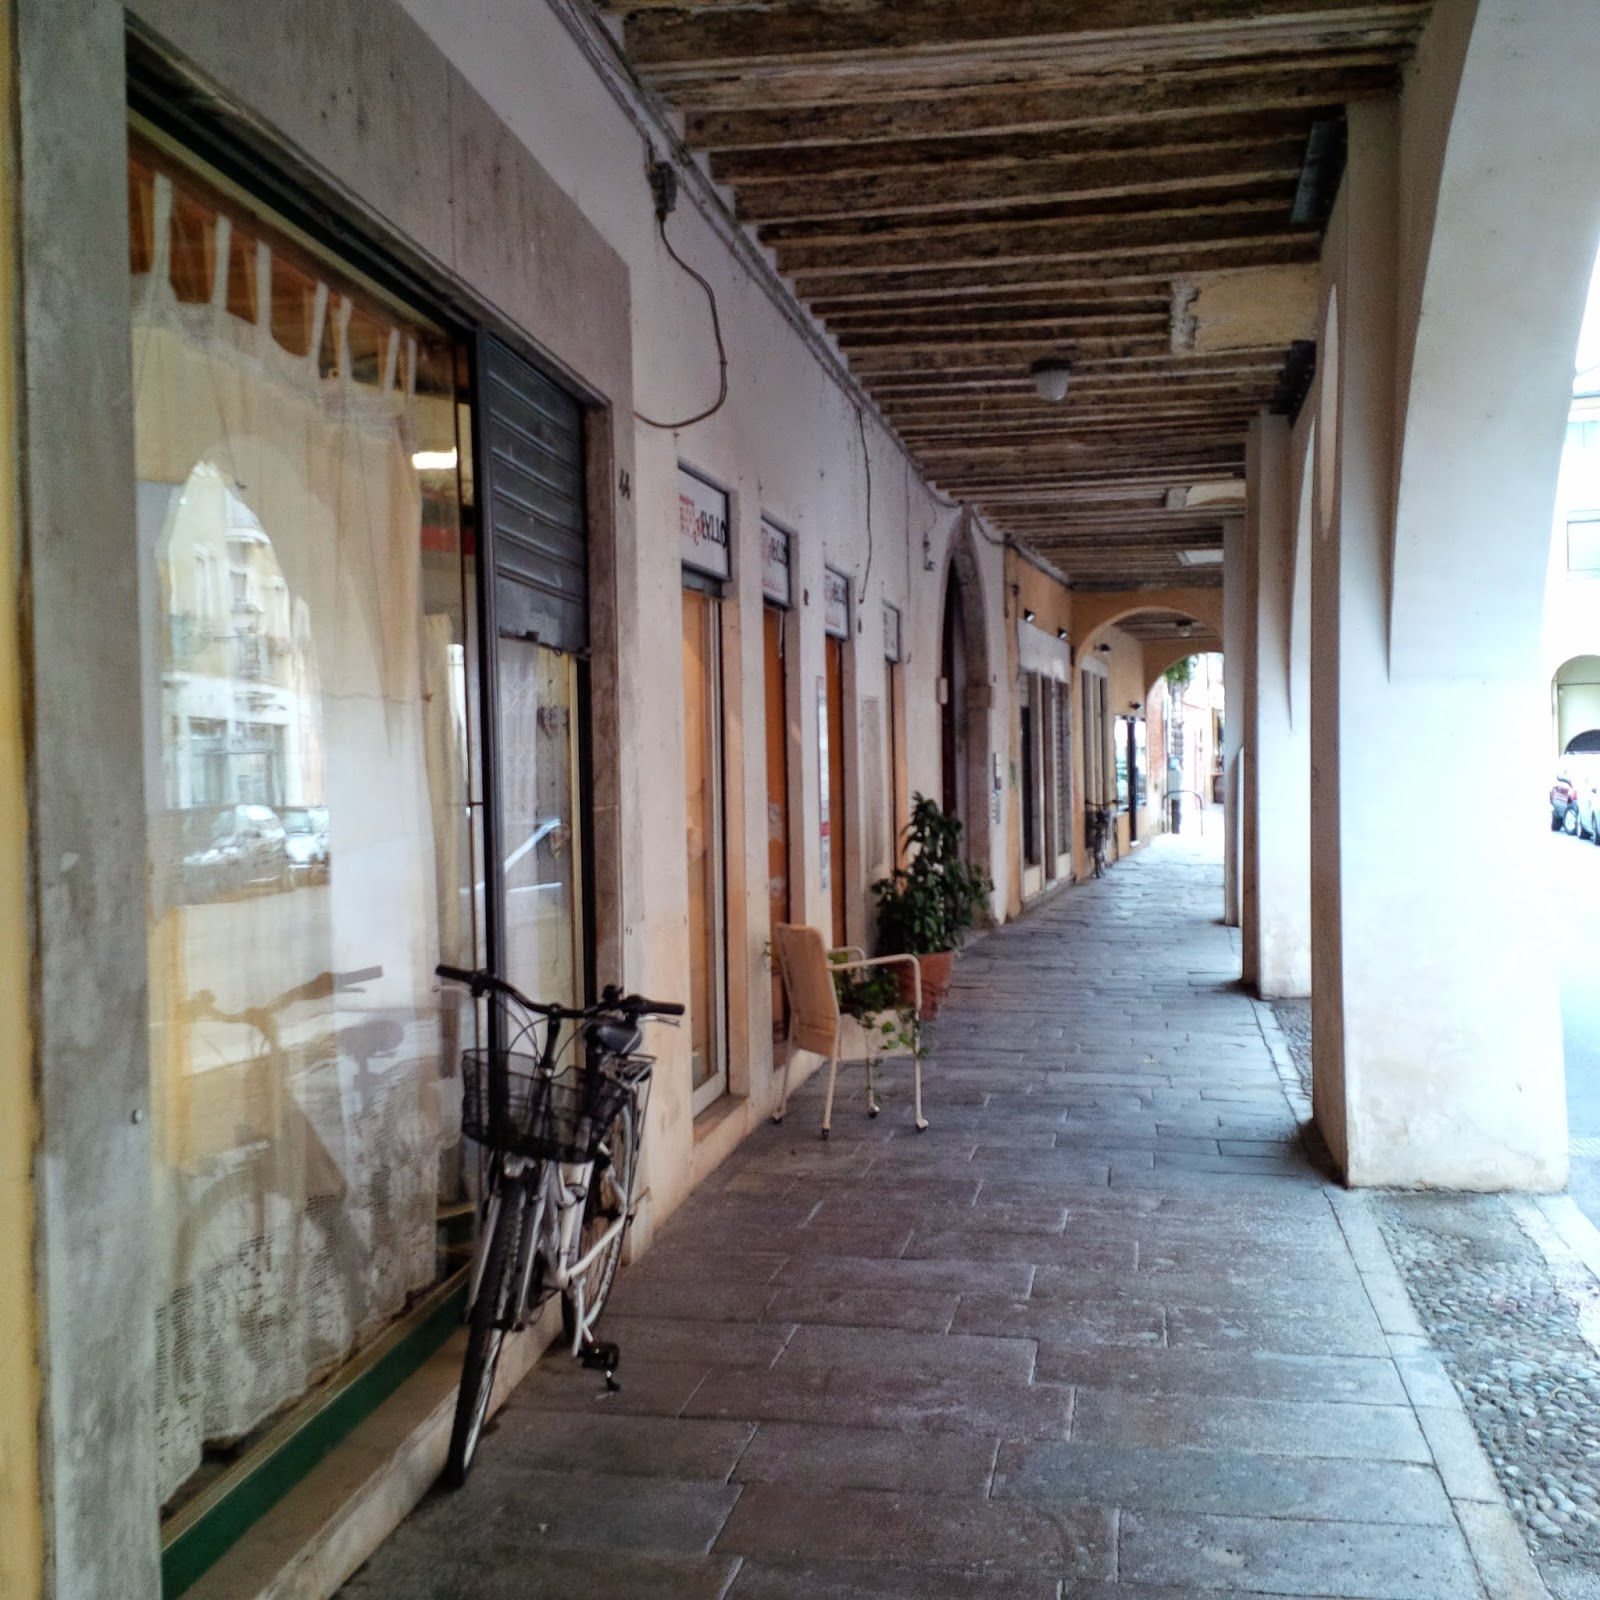 An elegant arcade with old-fashioned shops in Vicenza